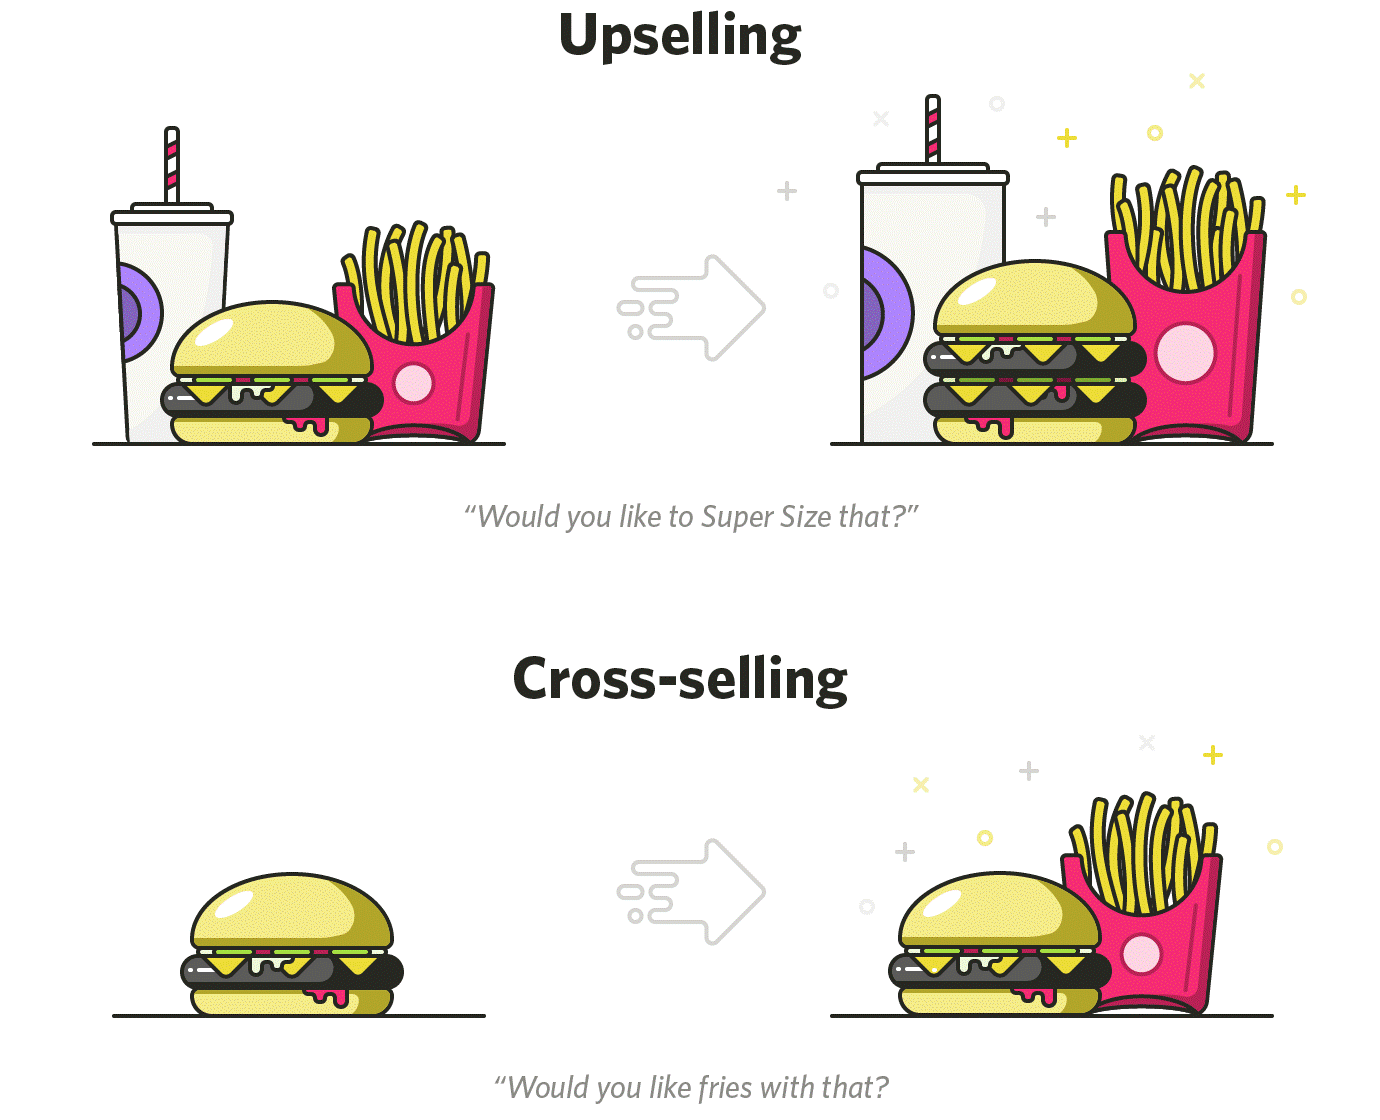 Upselling and cross-selling